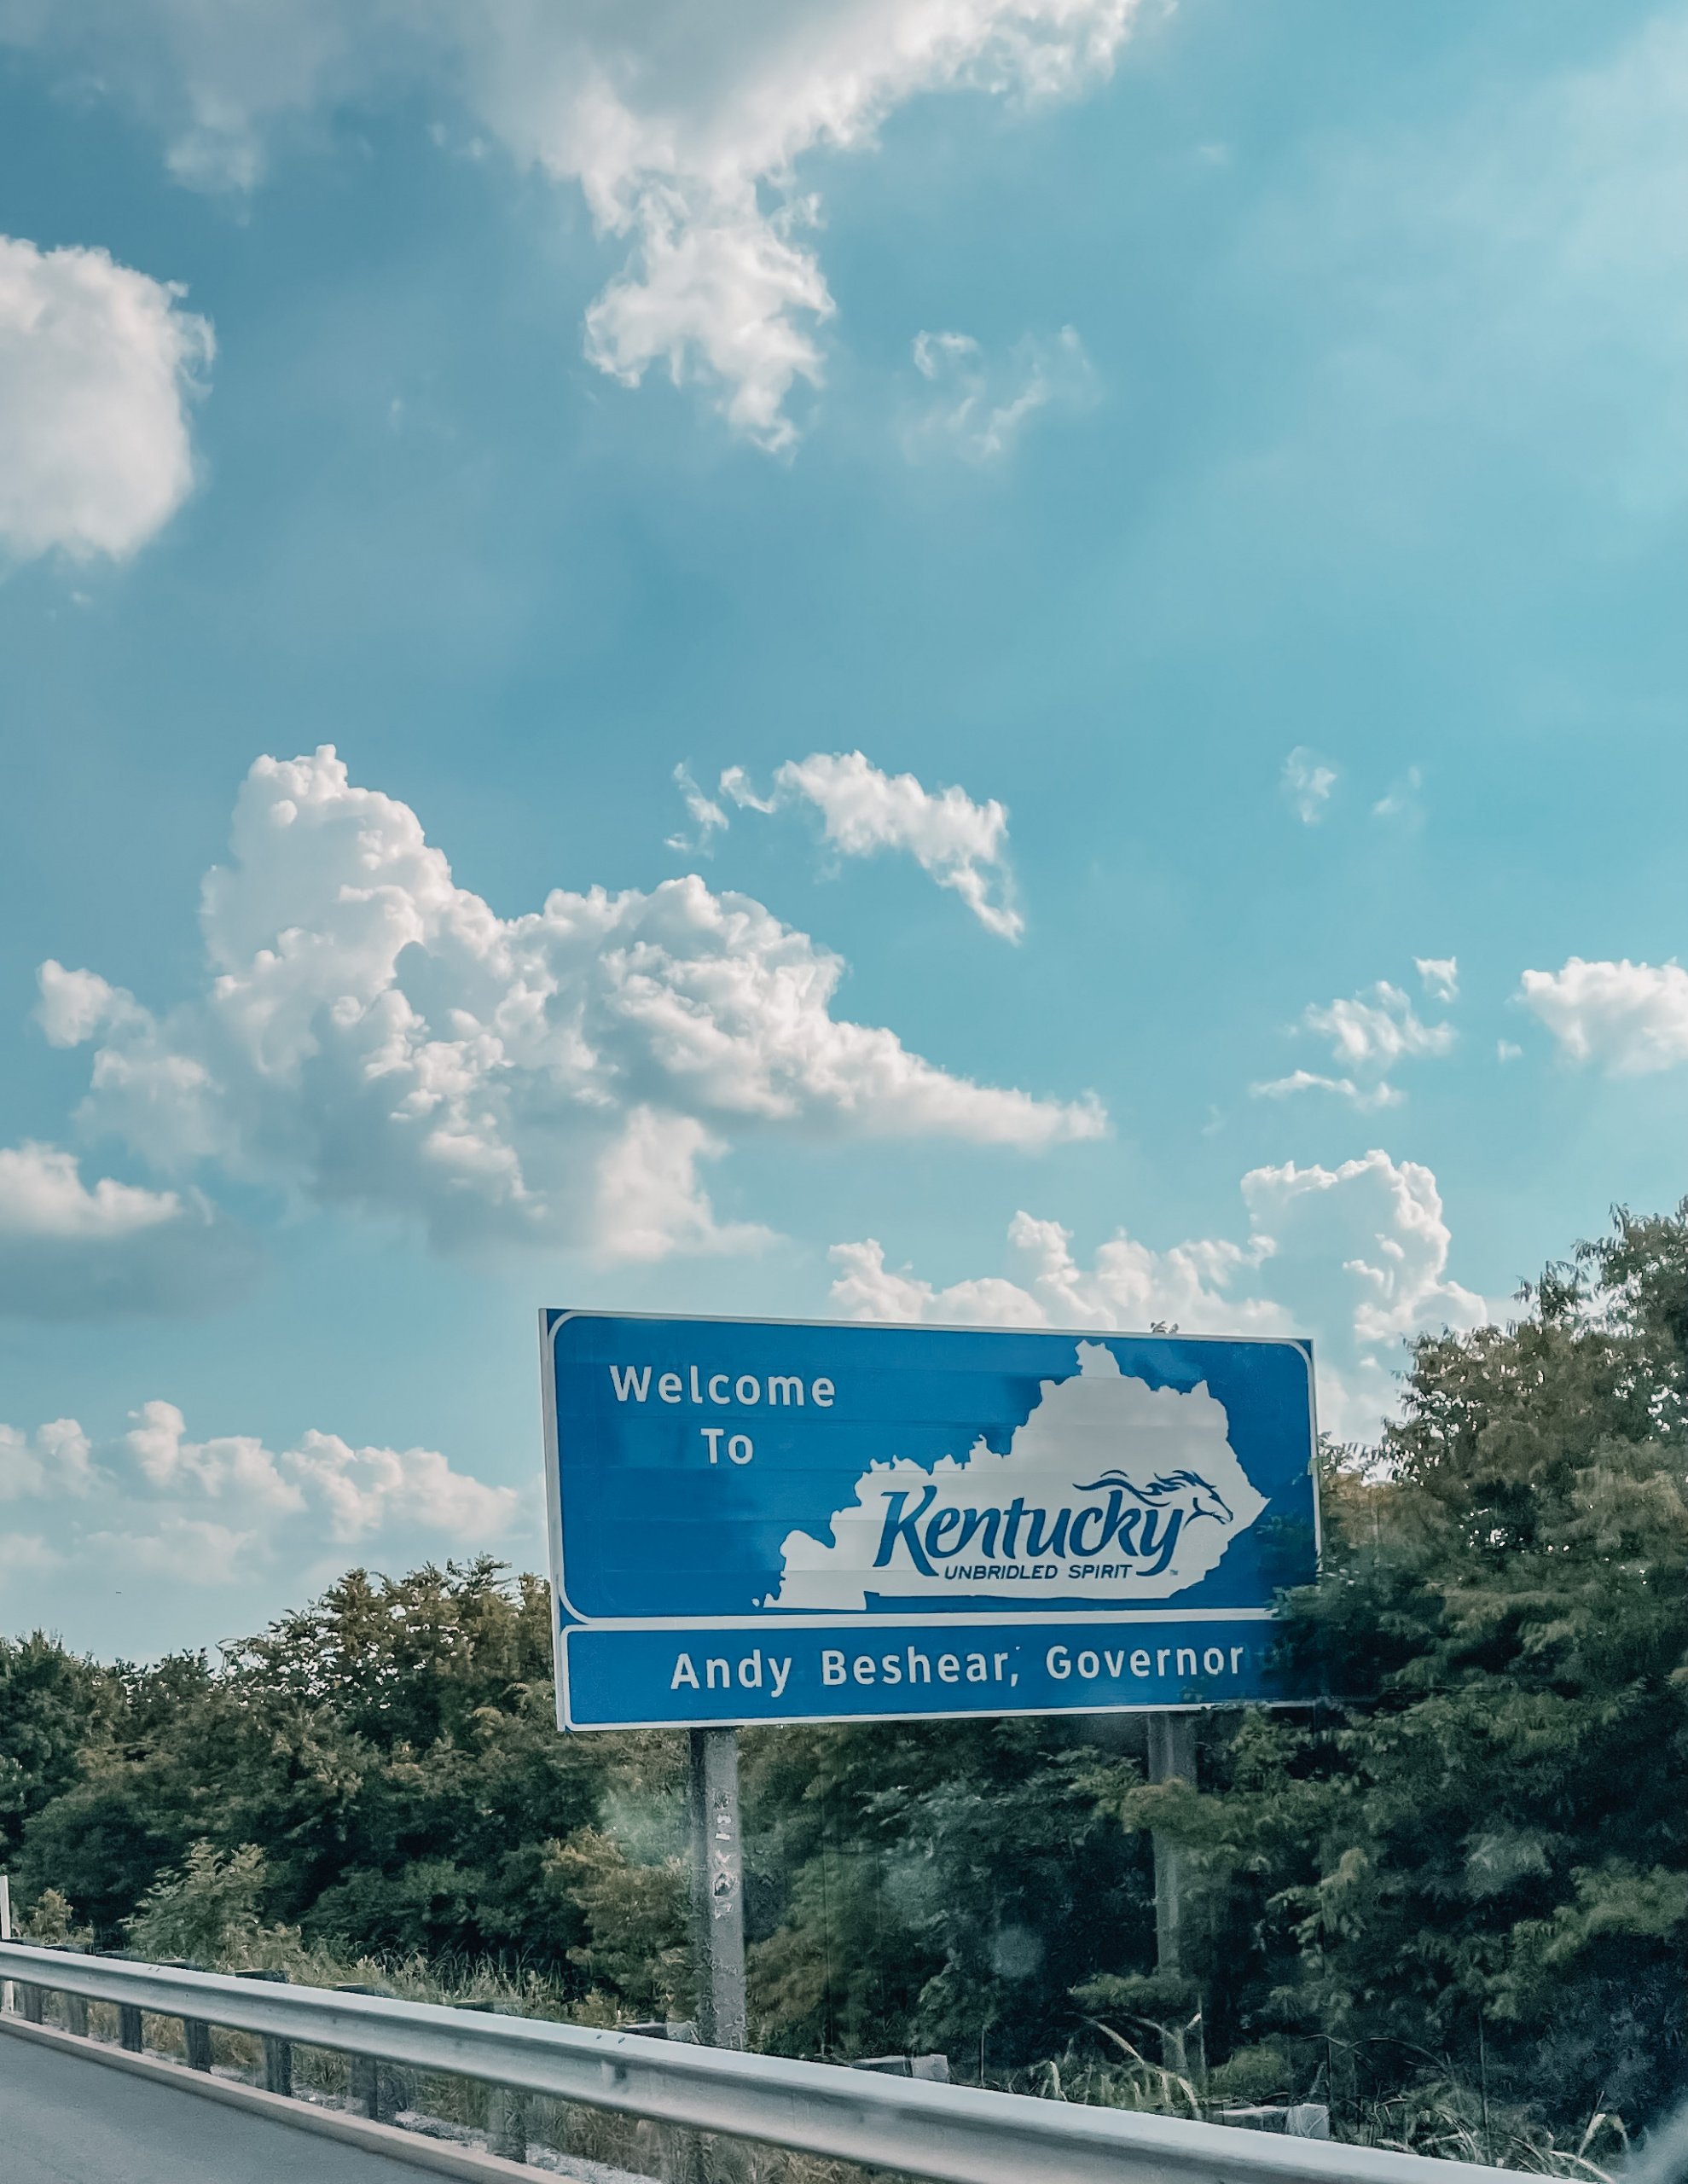 where to stop on a cross-country road trip, best places to stop on a cross country road trip, cross country road trip, west coast to east coast road trip, erin busbee, traveling with kids, how to travel with kids, how to travel with a dog, cross country road trip with kids, kentucky state line welcome sign, cross country busbee style, family road trip